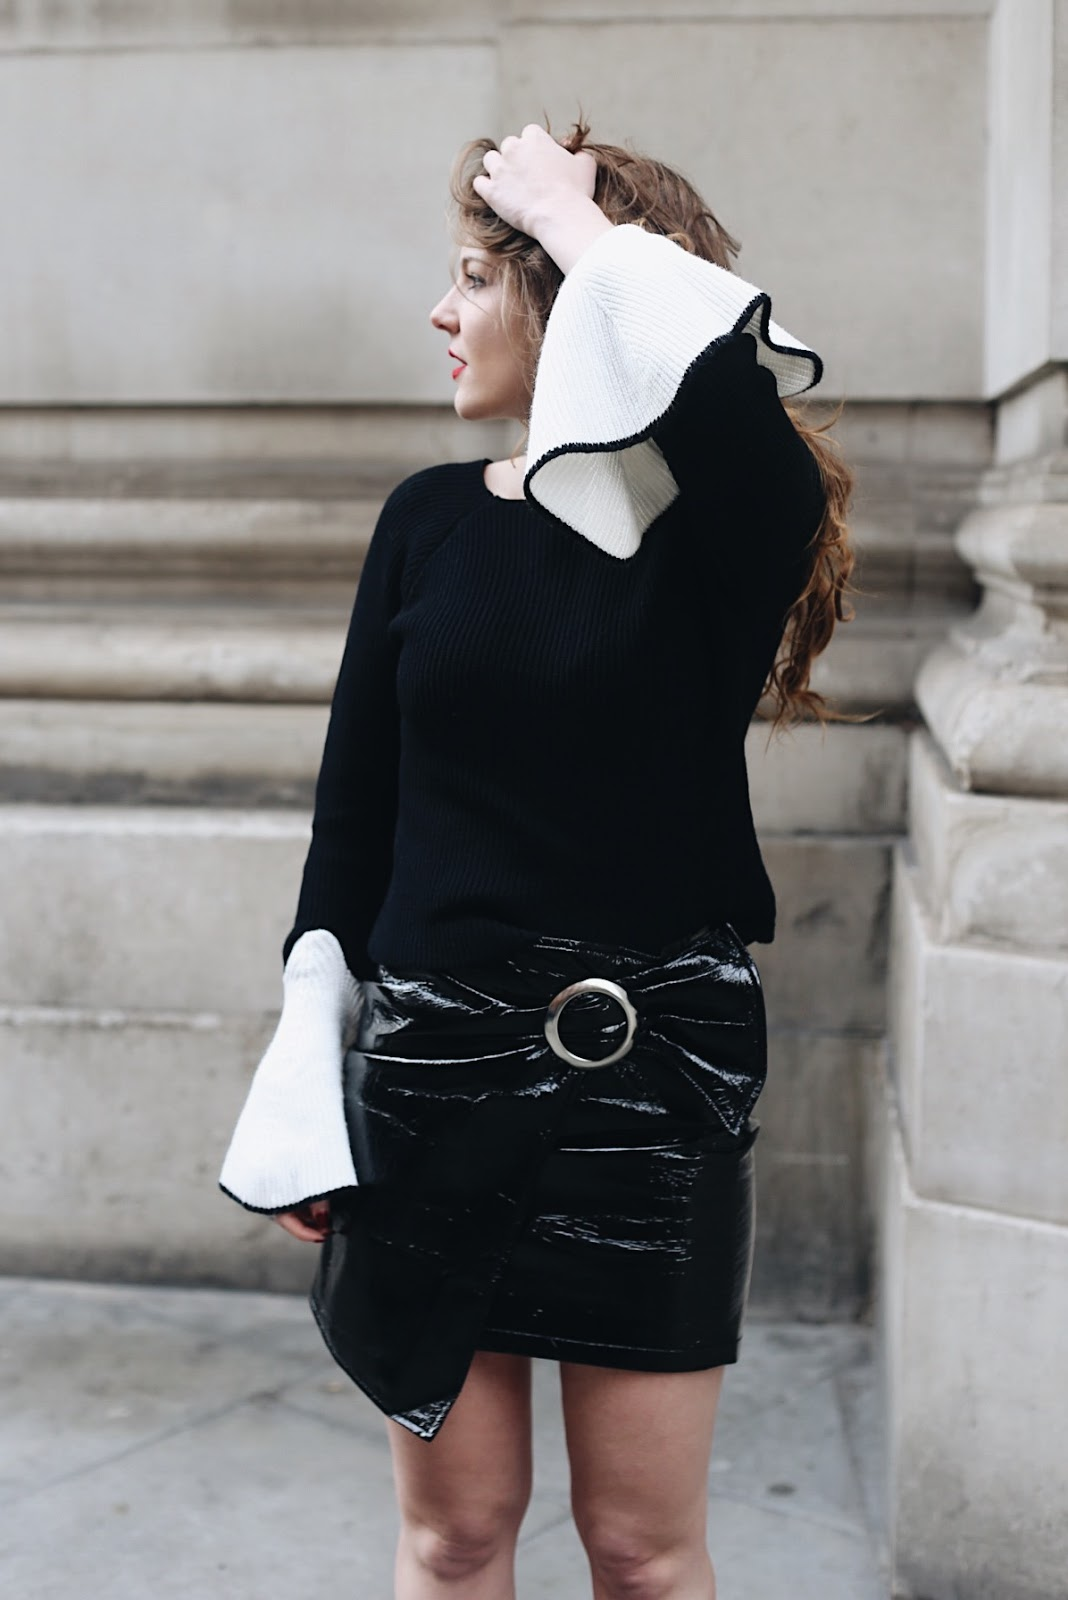 """london fashion, personal style, lfw, fashion style, mango skirt, skirt, rowme jumper, bell sleeves, oversized sleeves, london street style, london fashion, fashion blogger, style blogger"